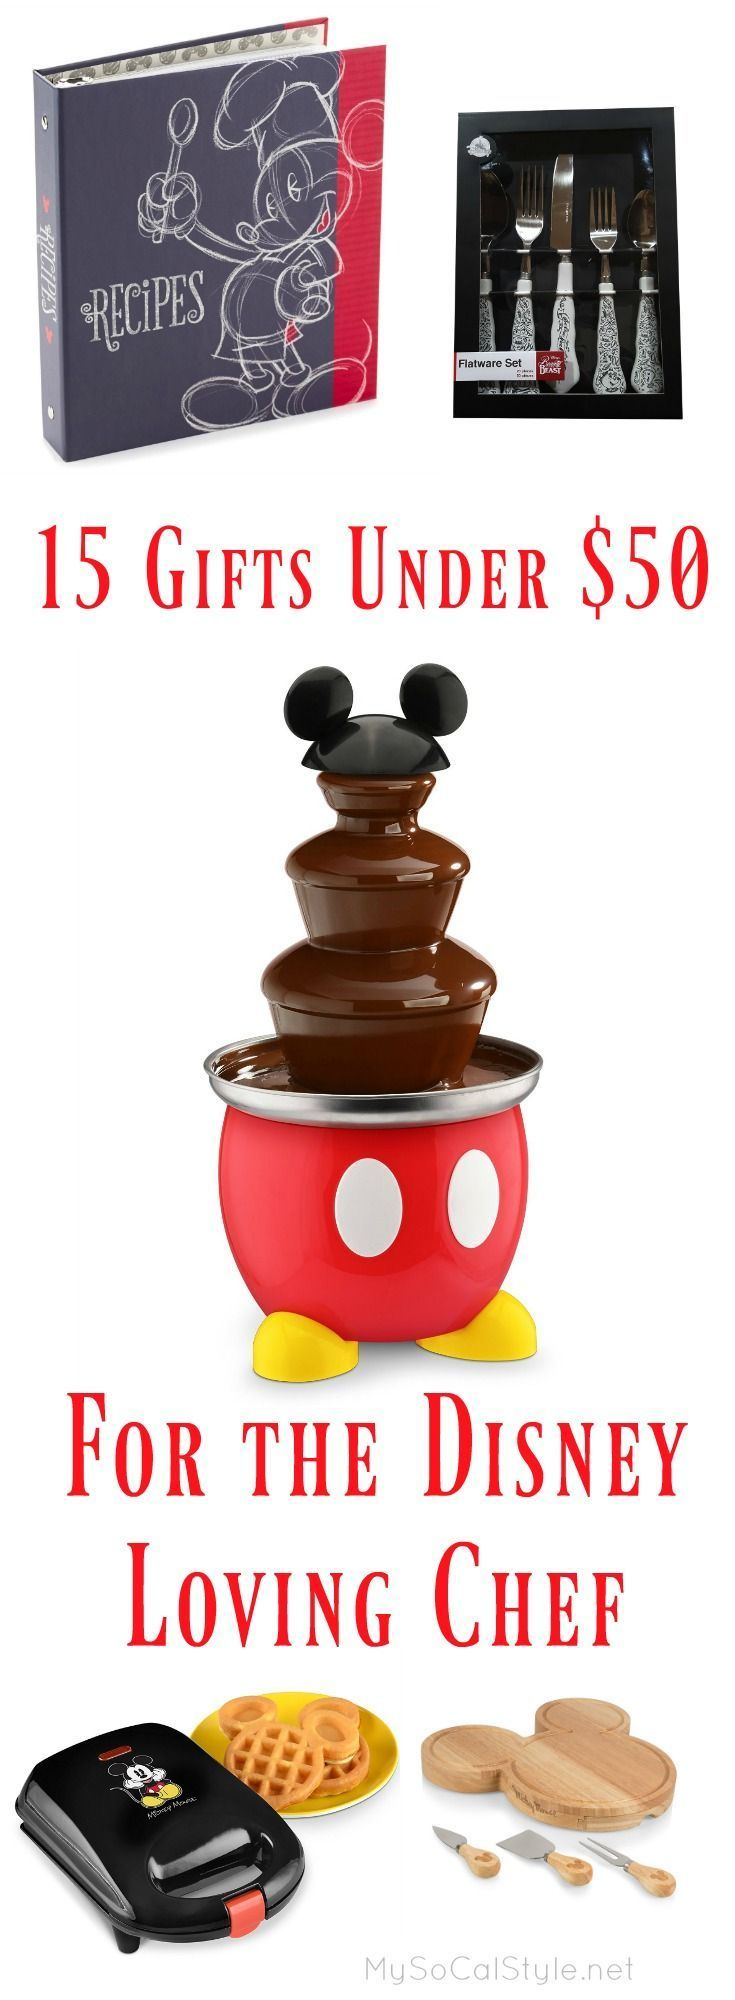 Not sure what to get this season for the Disney loving cook in your life? Check out this great guide! #Disney #Christmas #Gift #Cook #Chef #Present